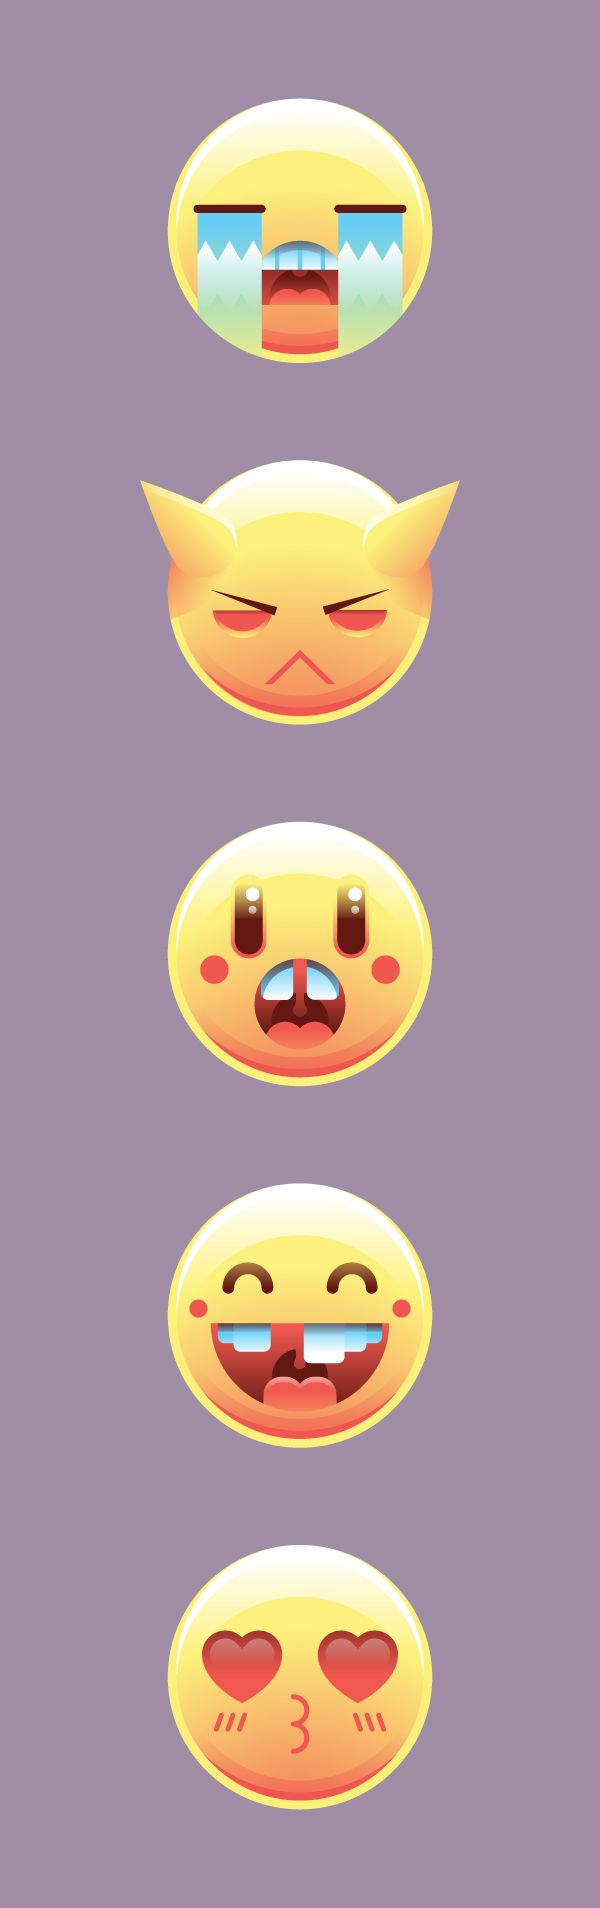 How To Draw A Set Of Emoticons In Adobe Illustrator